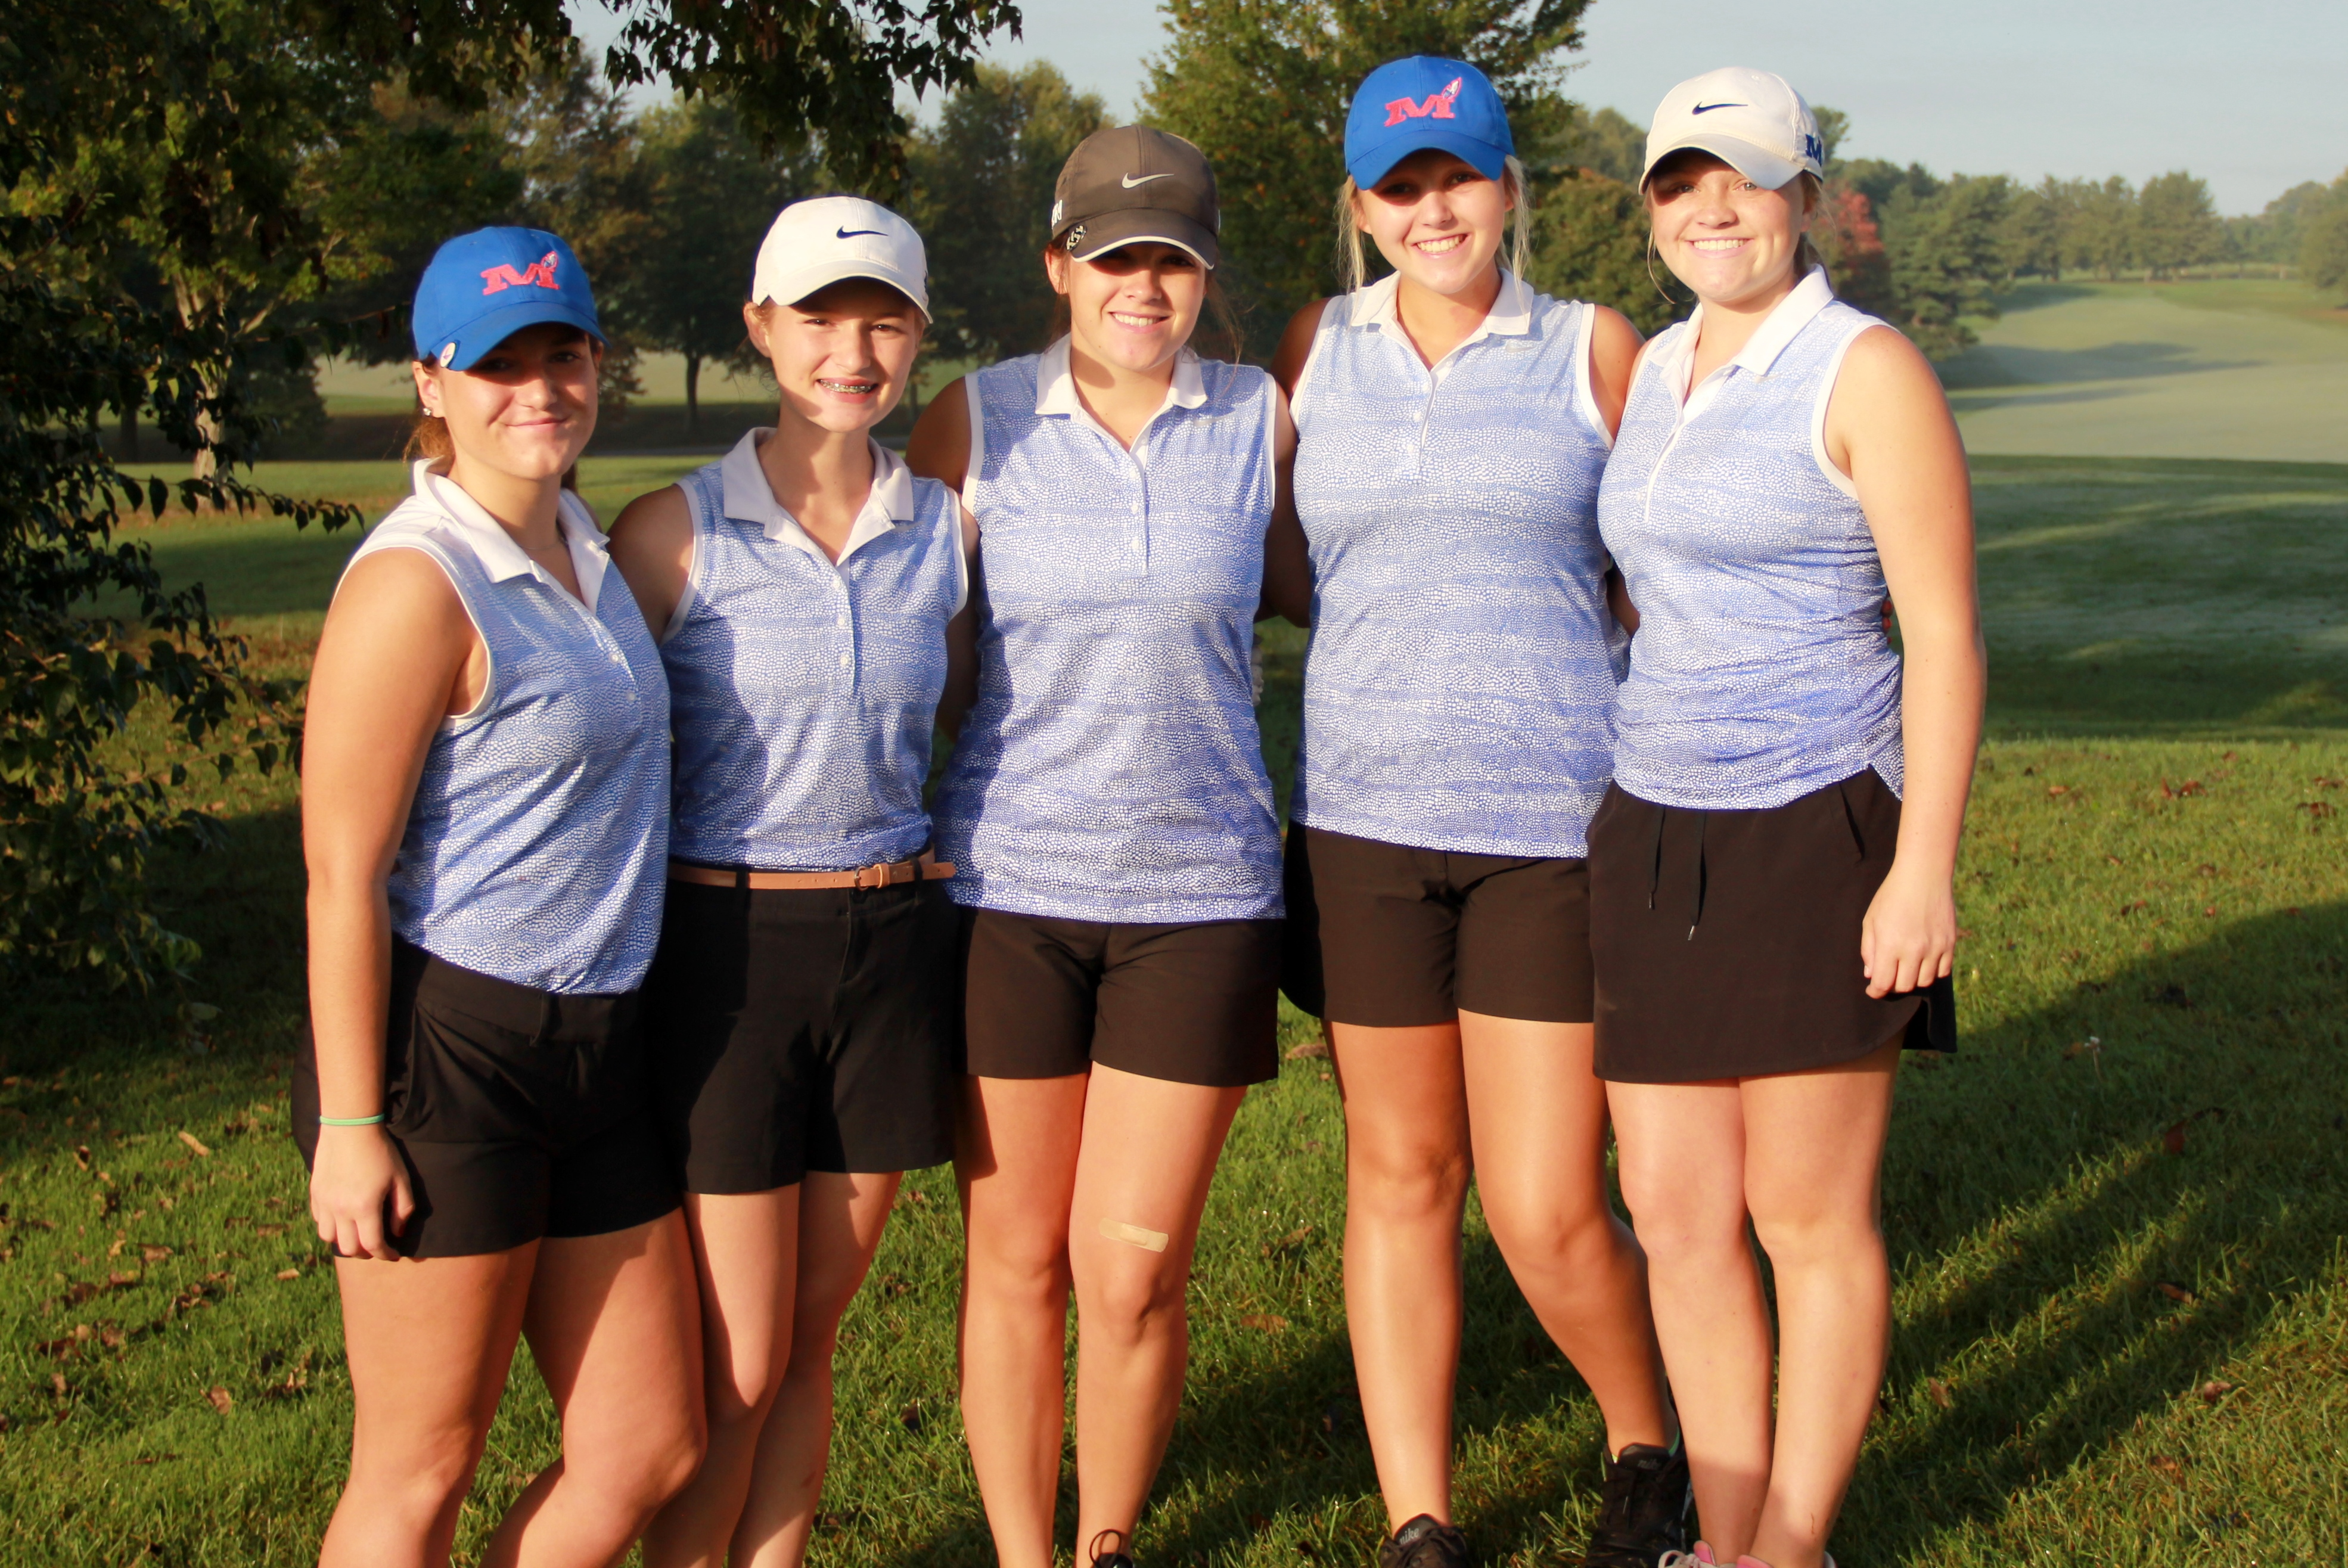 MCHS Girls' Golf Team Region Runners Up